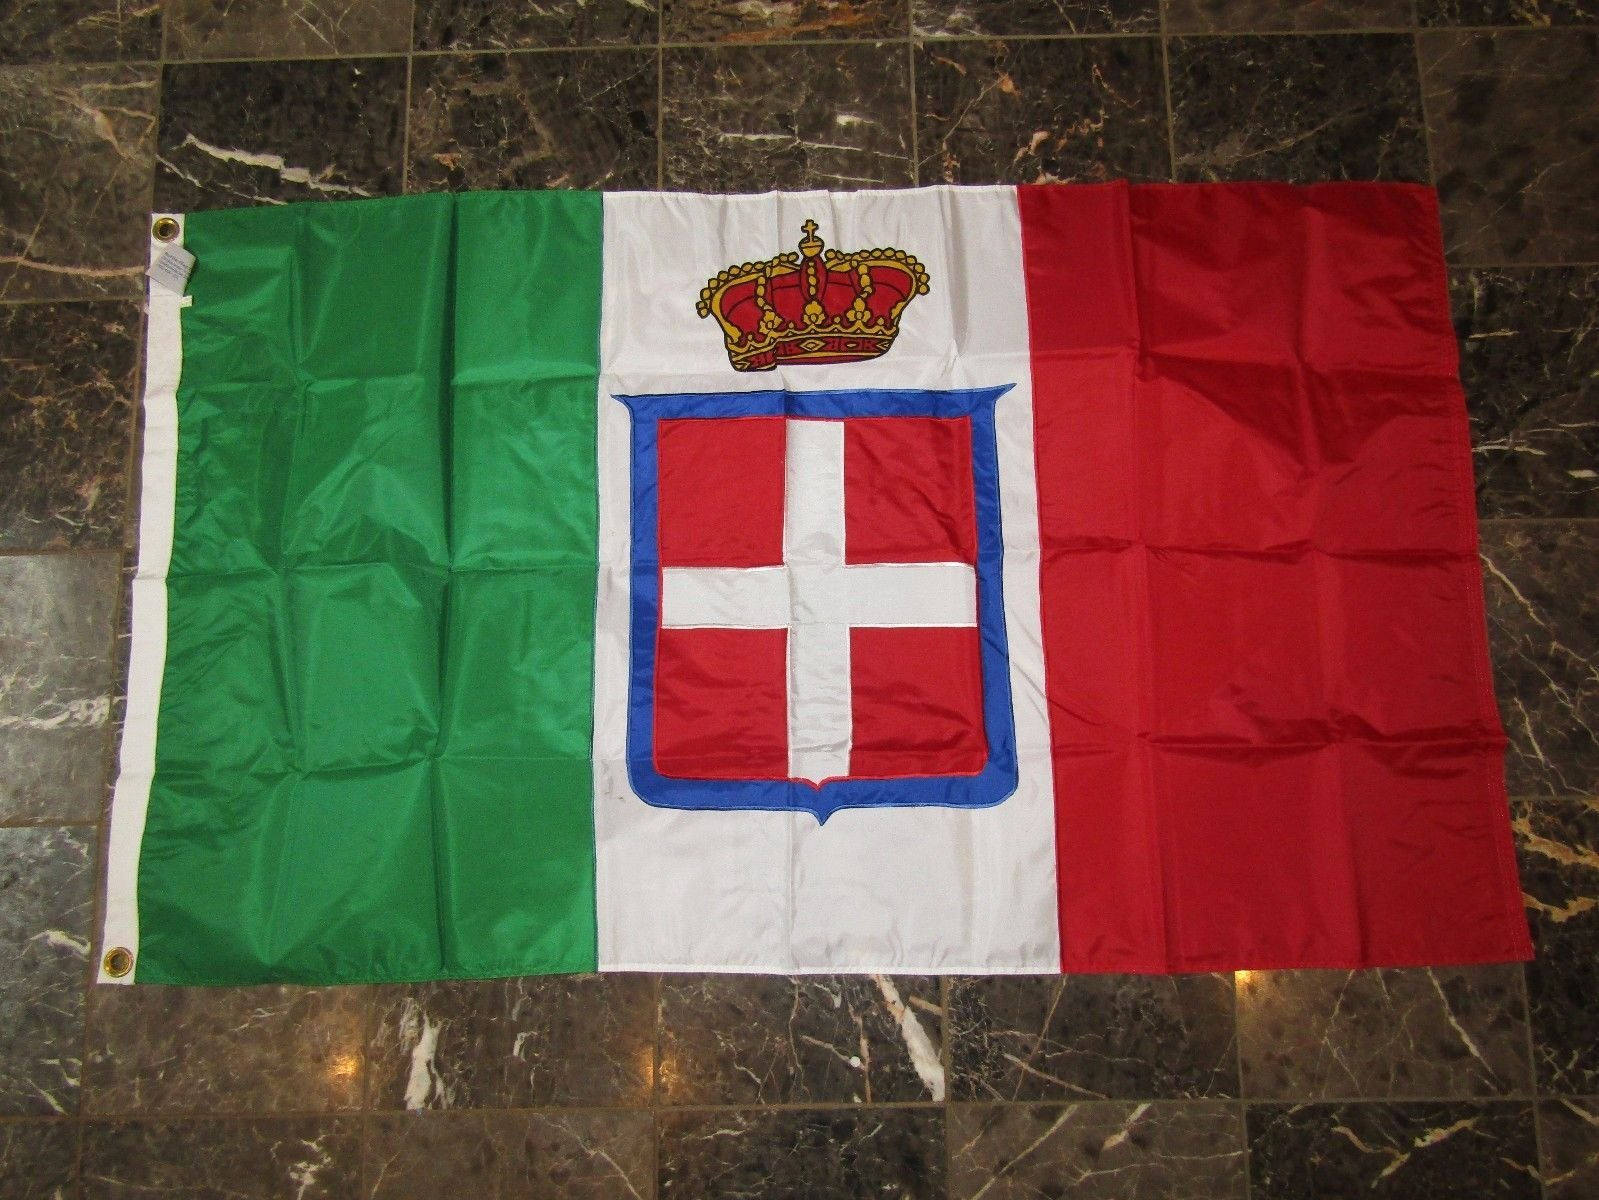 3X5 Embroidered Sewn Kingdom Italy Royal Crown Nylon Flag 3'X5' Brass Grommets